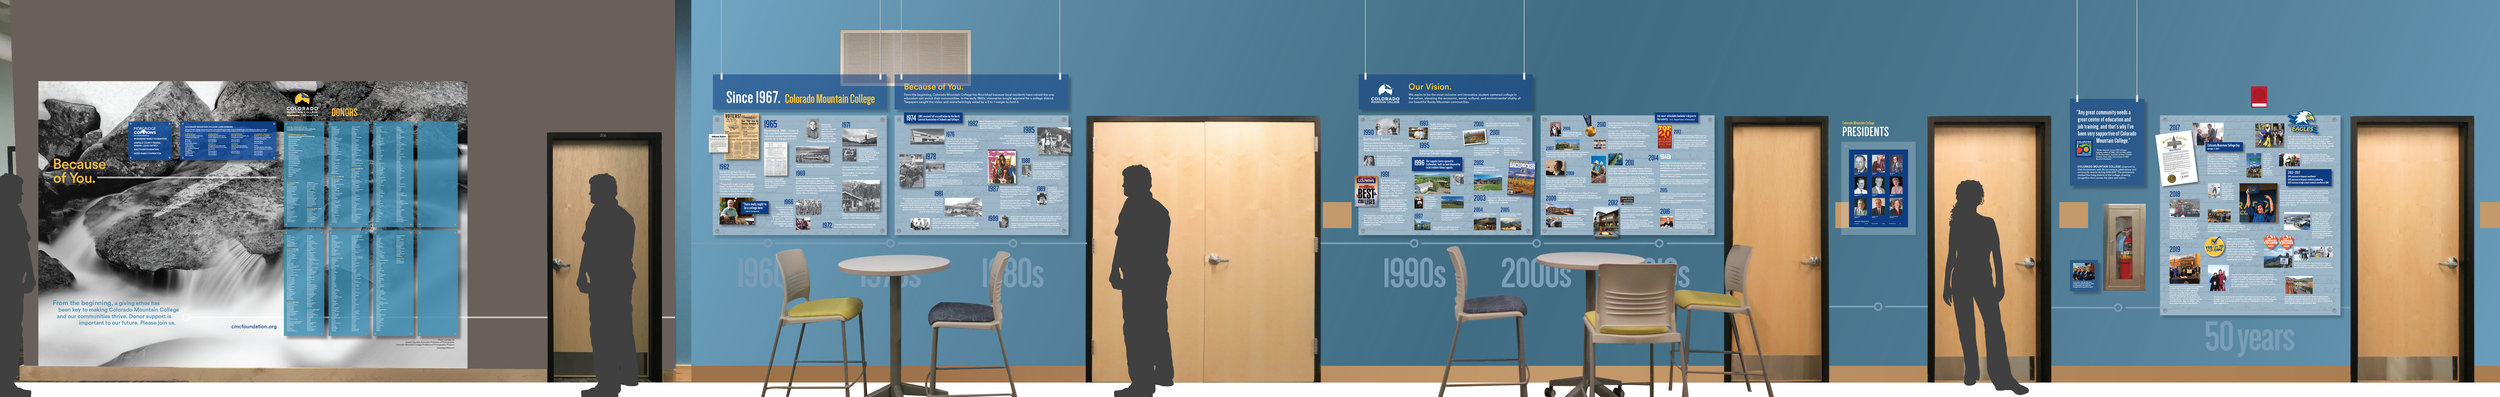 Glenwood Springs : Morgridge Commons Meeting & Conference Center 50th Anniversary panel design (West wall)